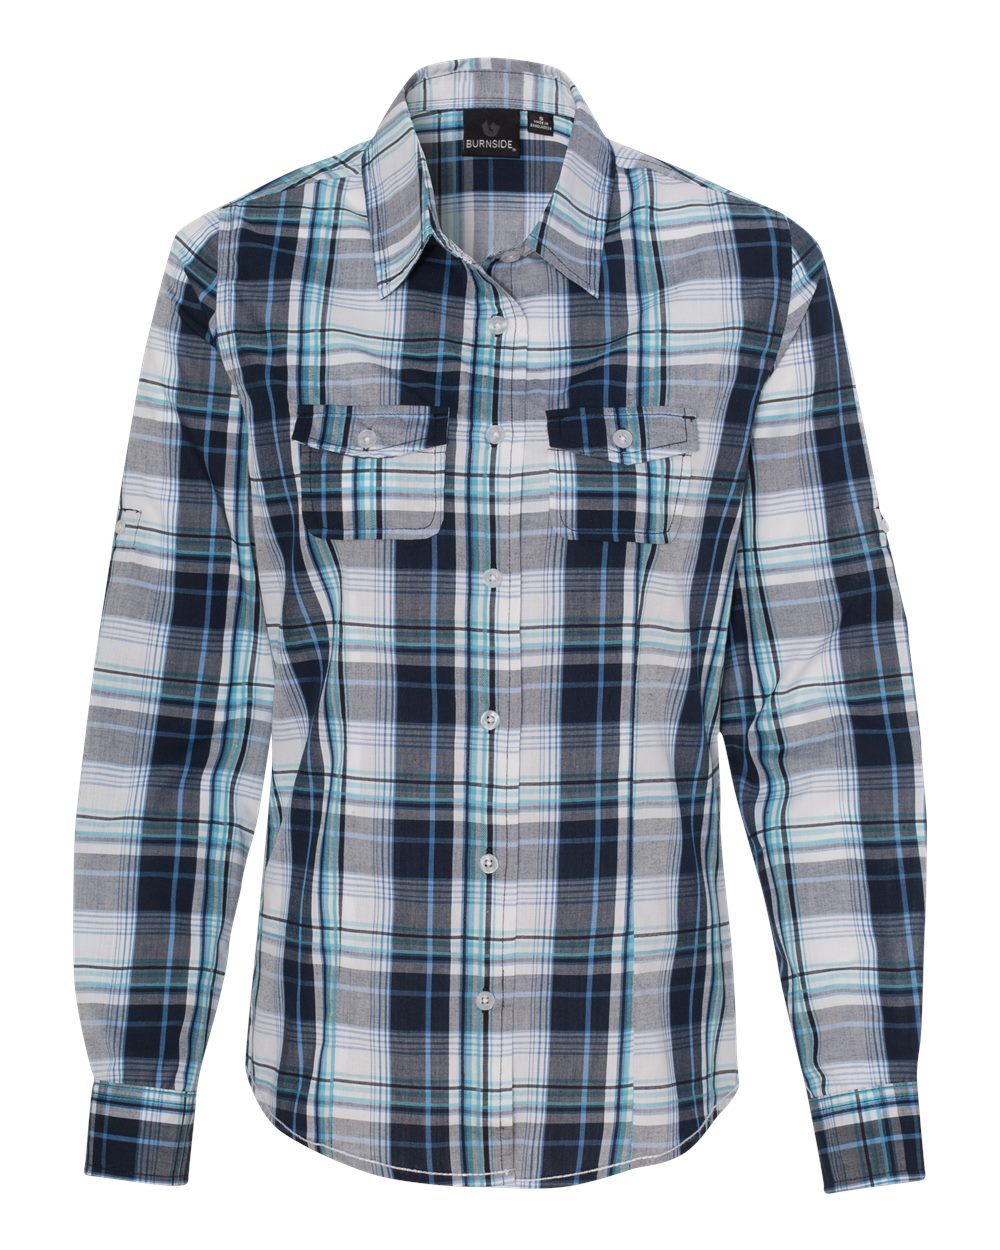 Picture of Burnside Women's Long Sleeve Plaid Shirt